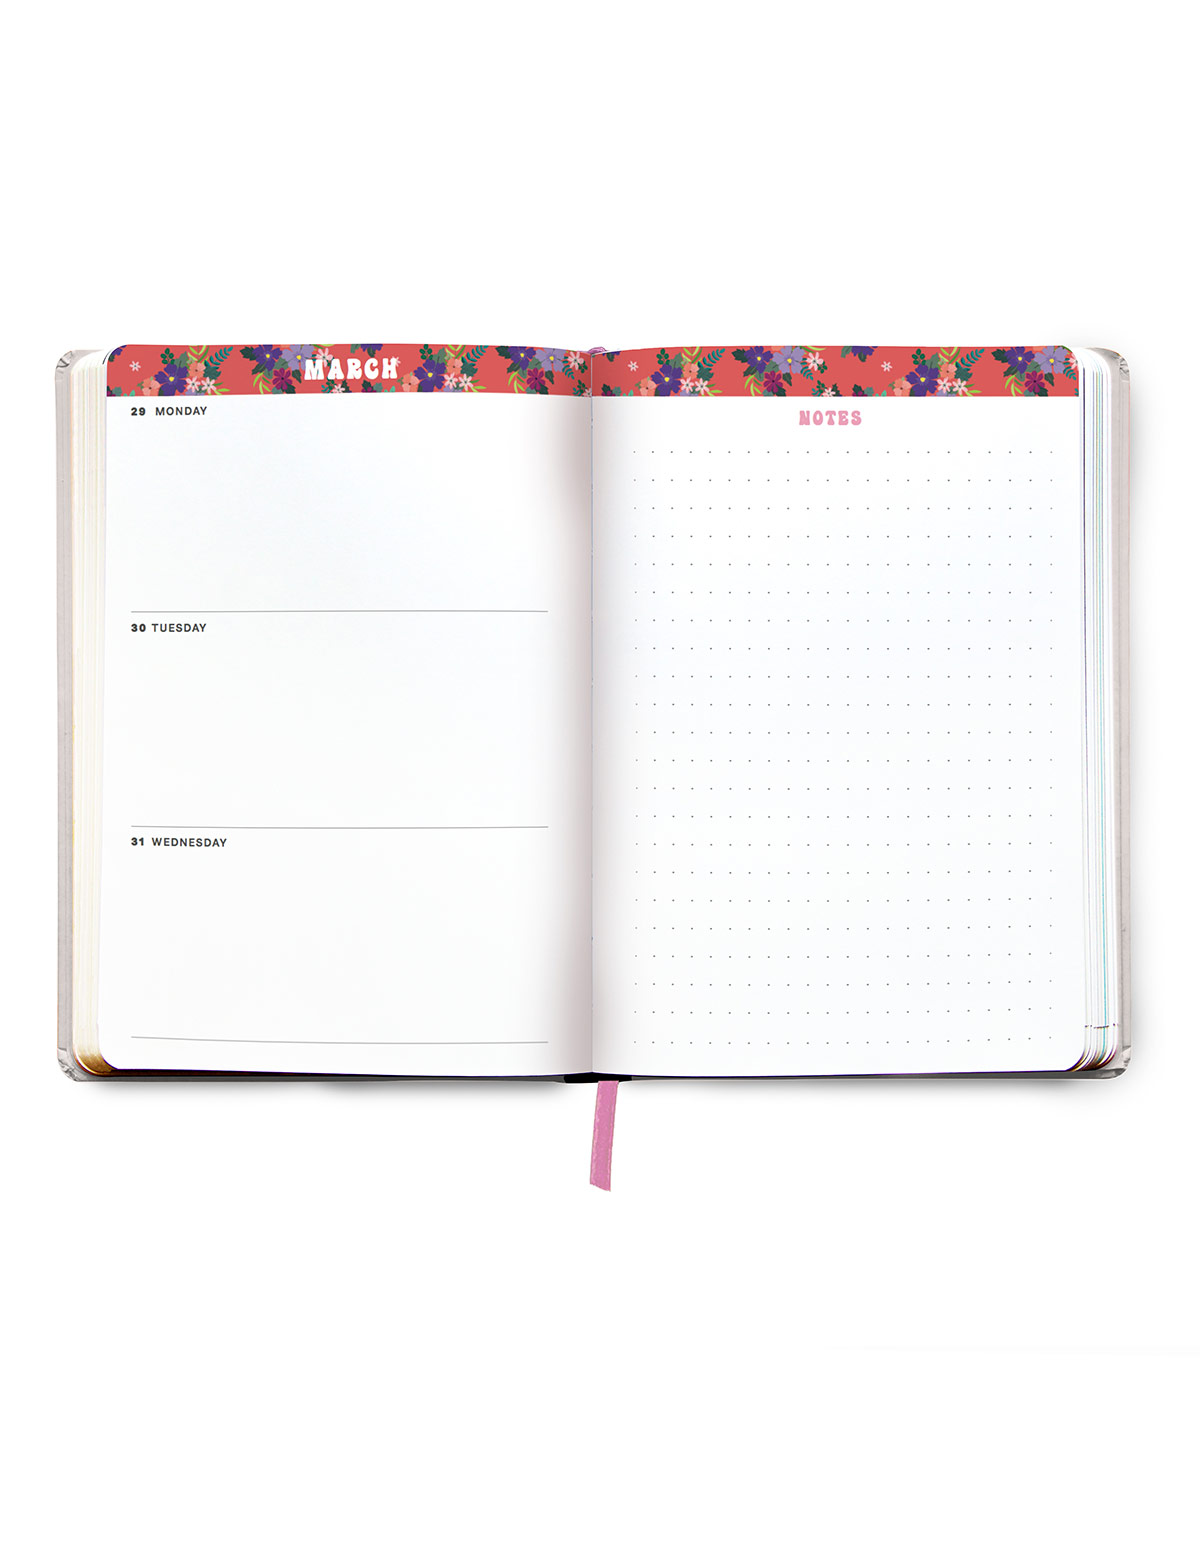 Just A Girl Boss Building Her Empire 2021 Agenda - Monthly Planner